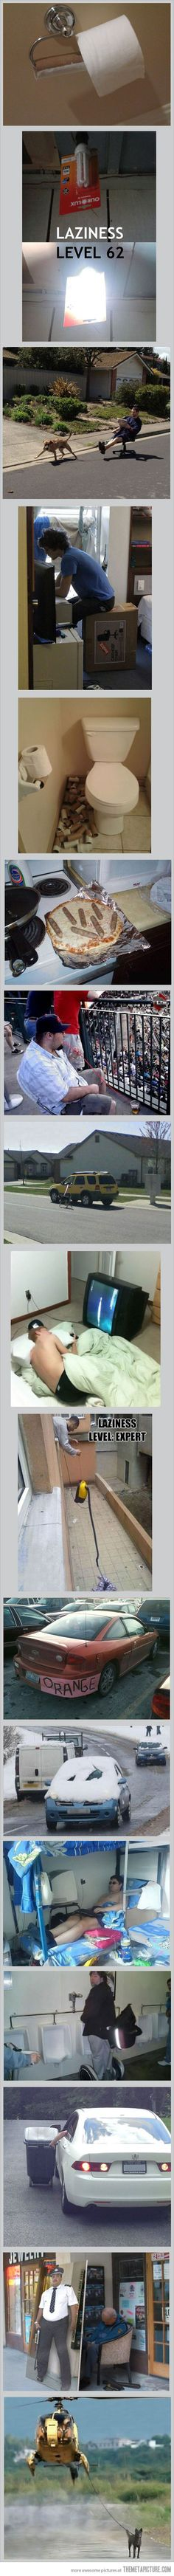 17 Acts Of Epic Laziness... Seriously I'm cracking up at the expert level of laziness.... Sooo funny!